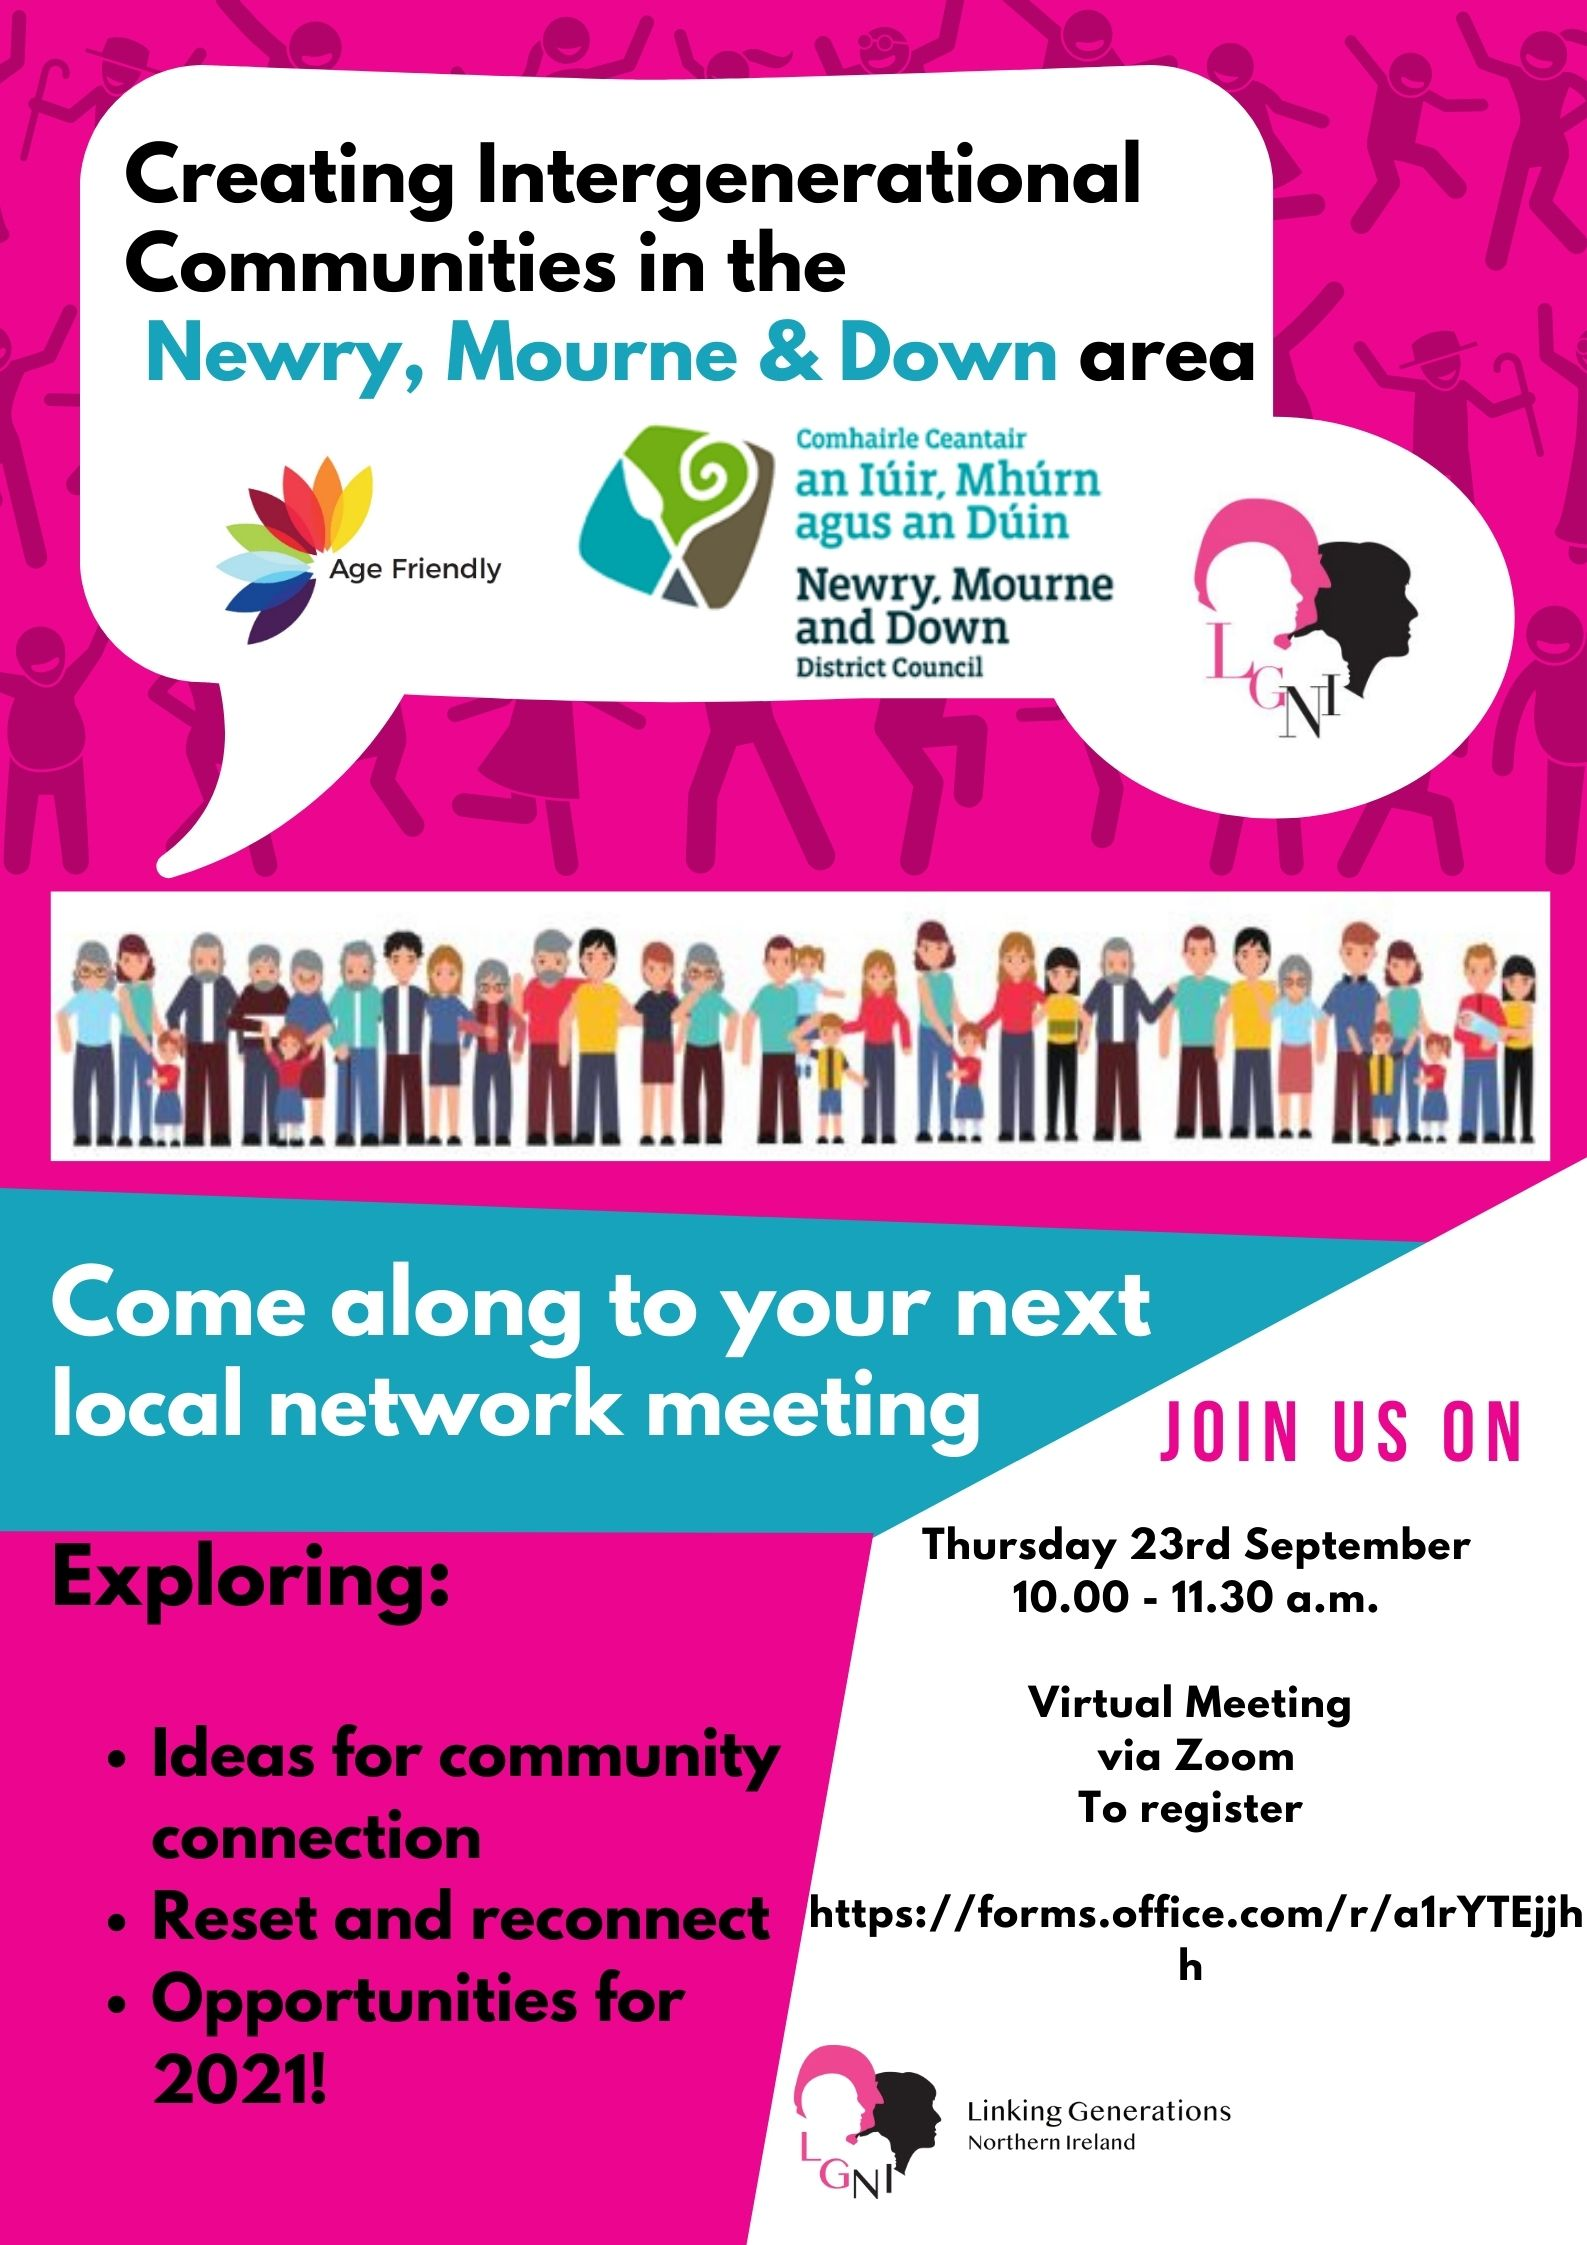 LGNI Newry Mourne & Down Network Meeting